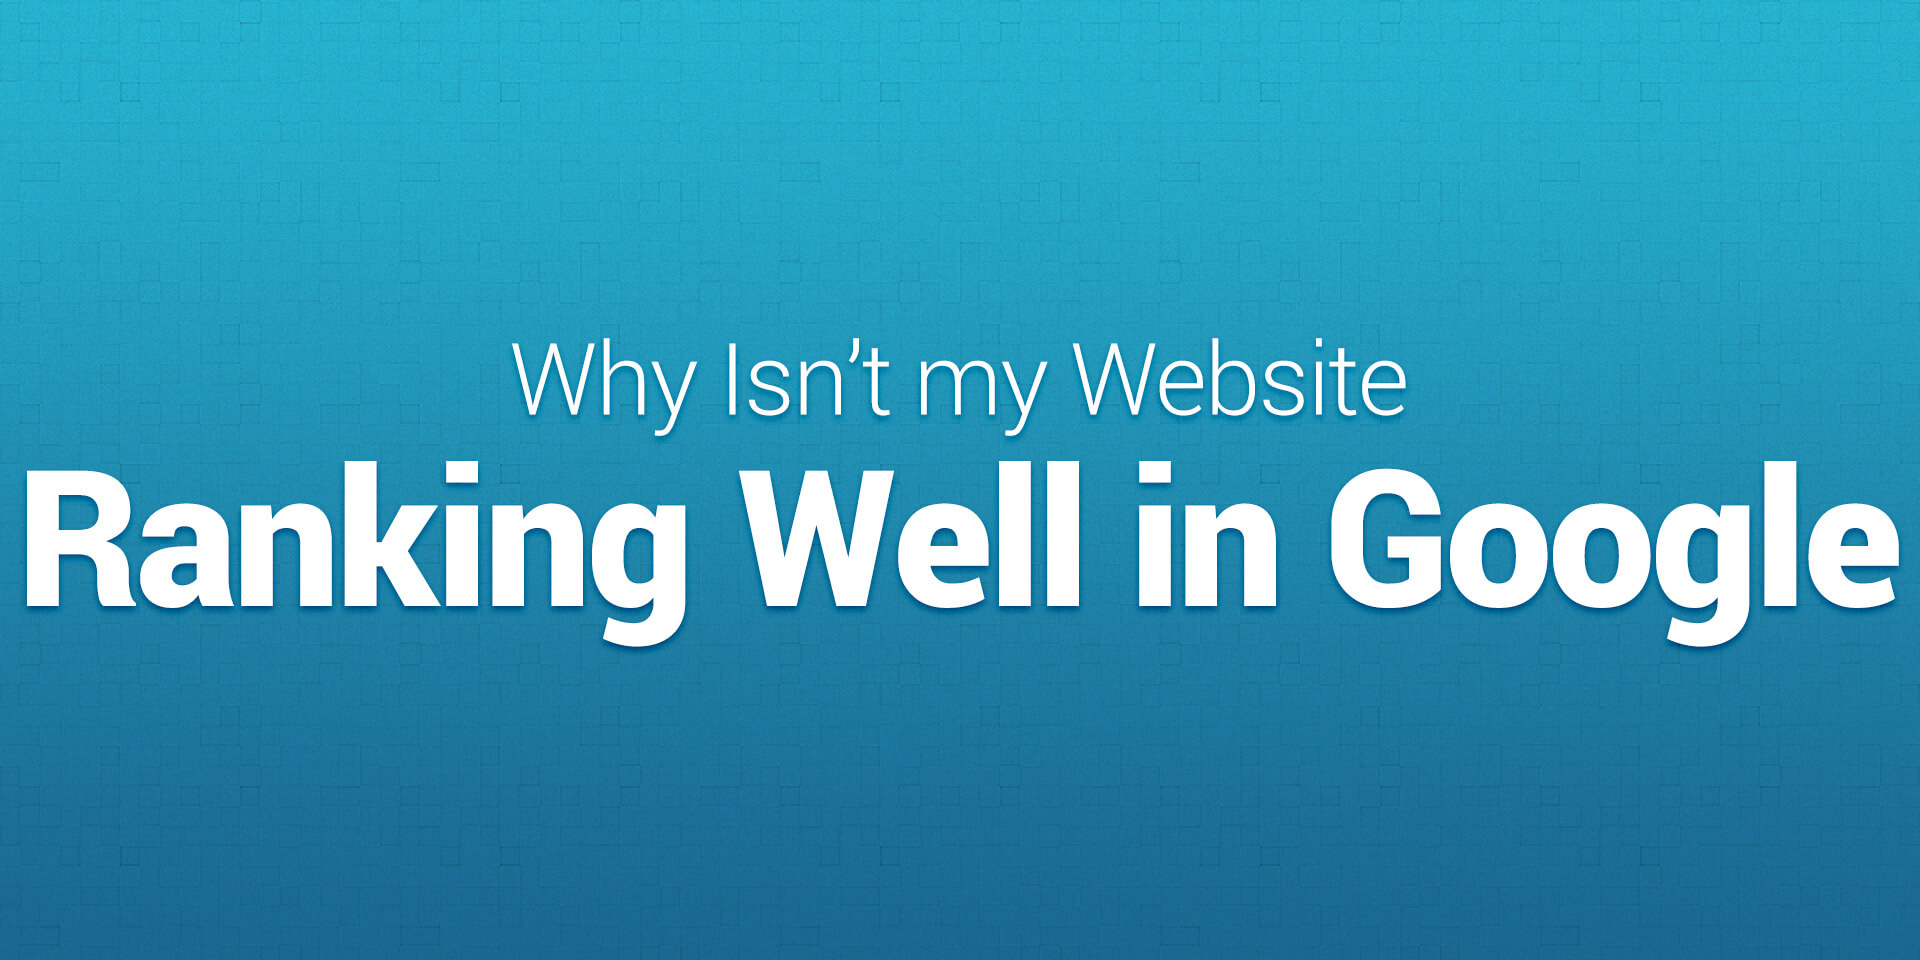 Why isn't my website ranking well in Google?